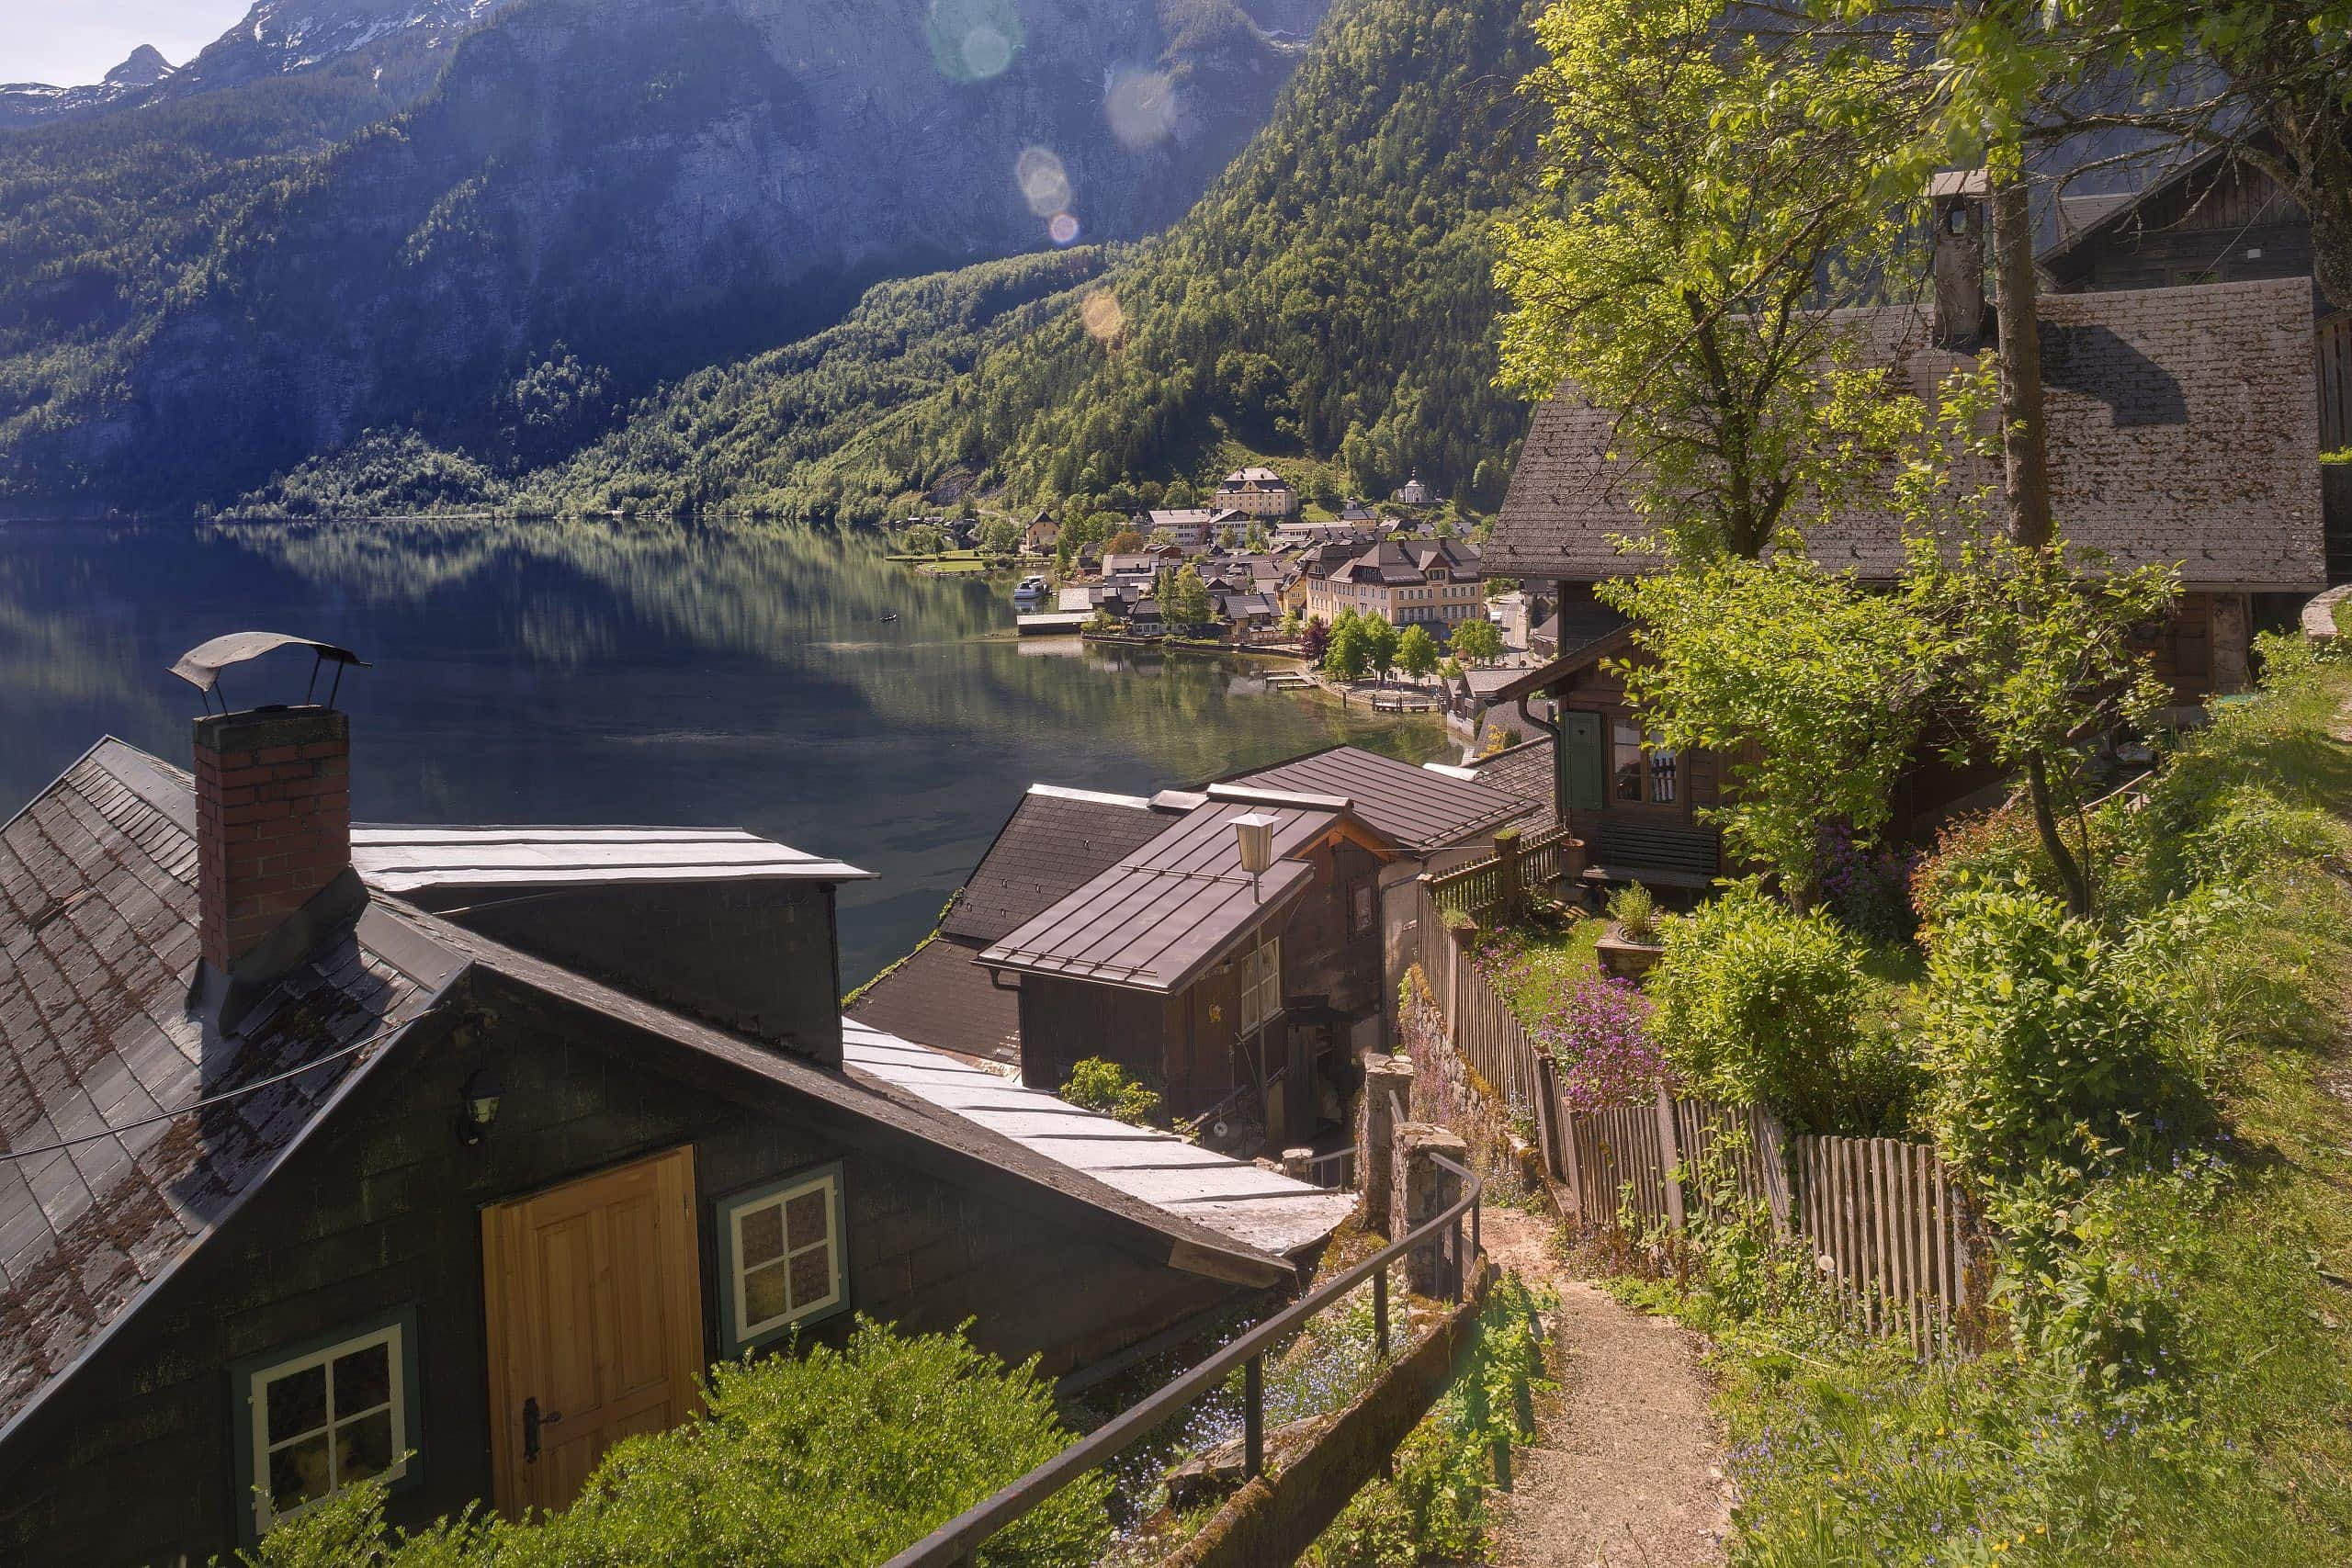 Looking down the narrow path towards the Town of Hallstatt from half way up the Hill.